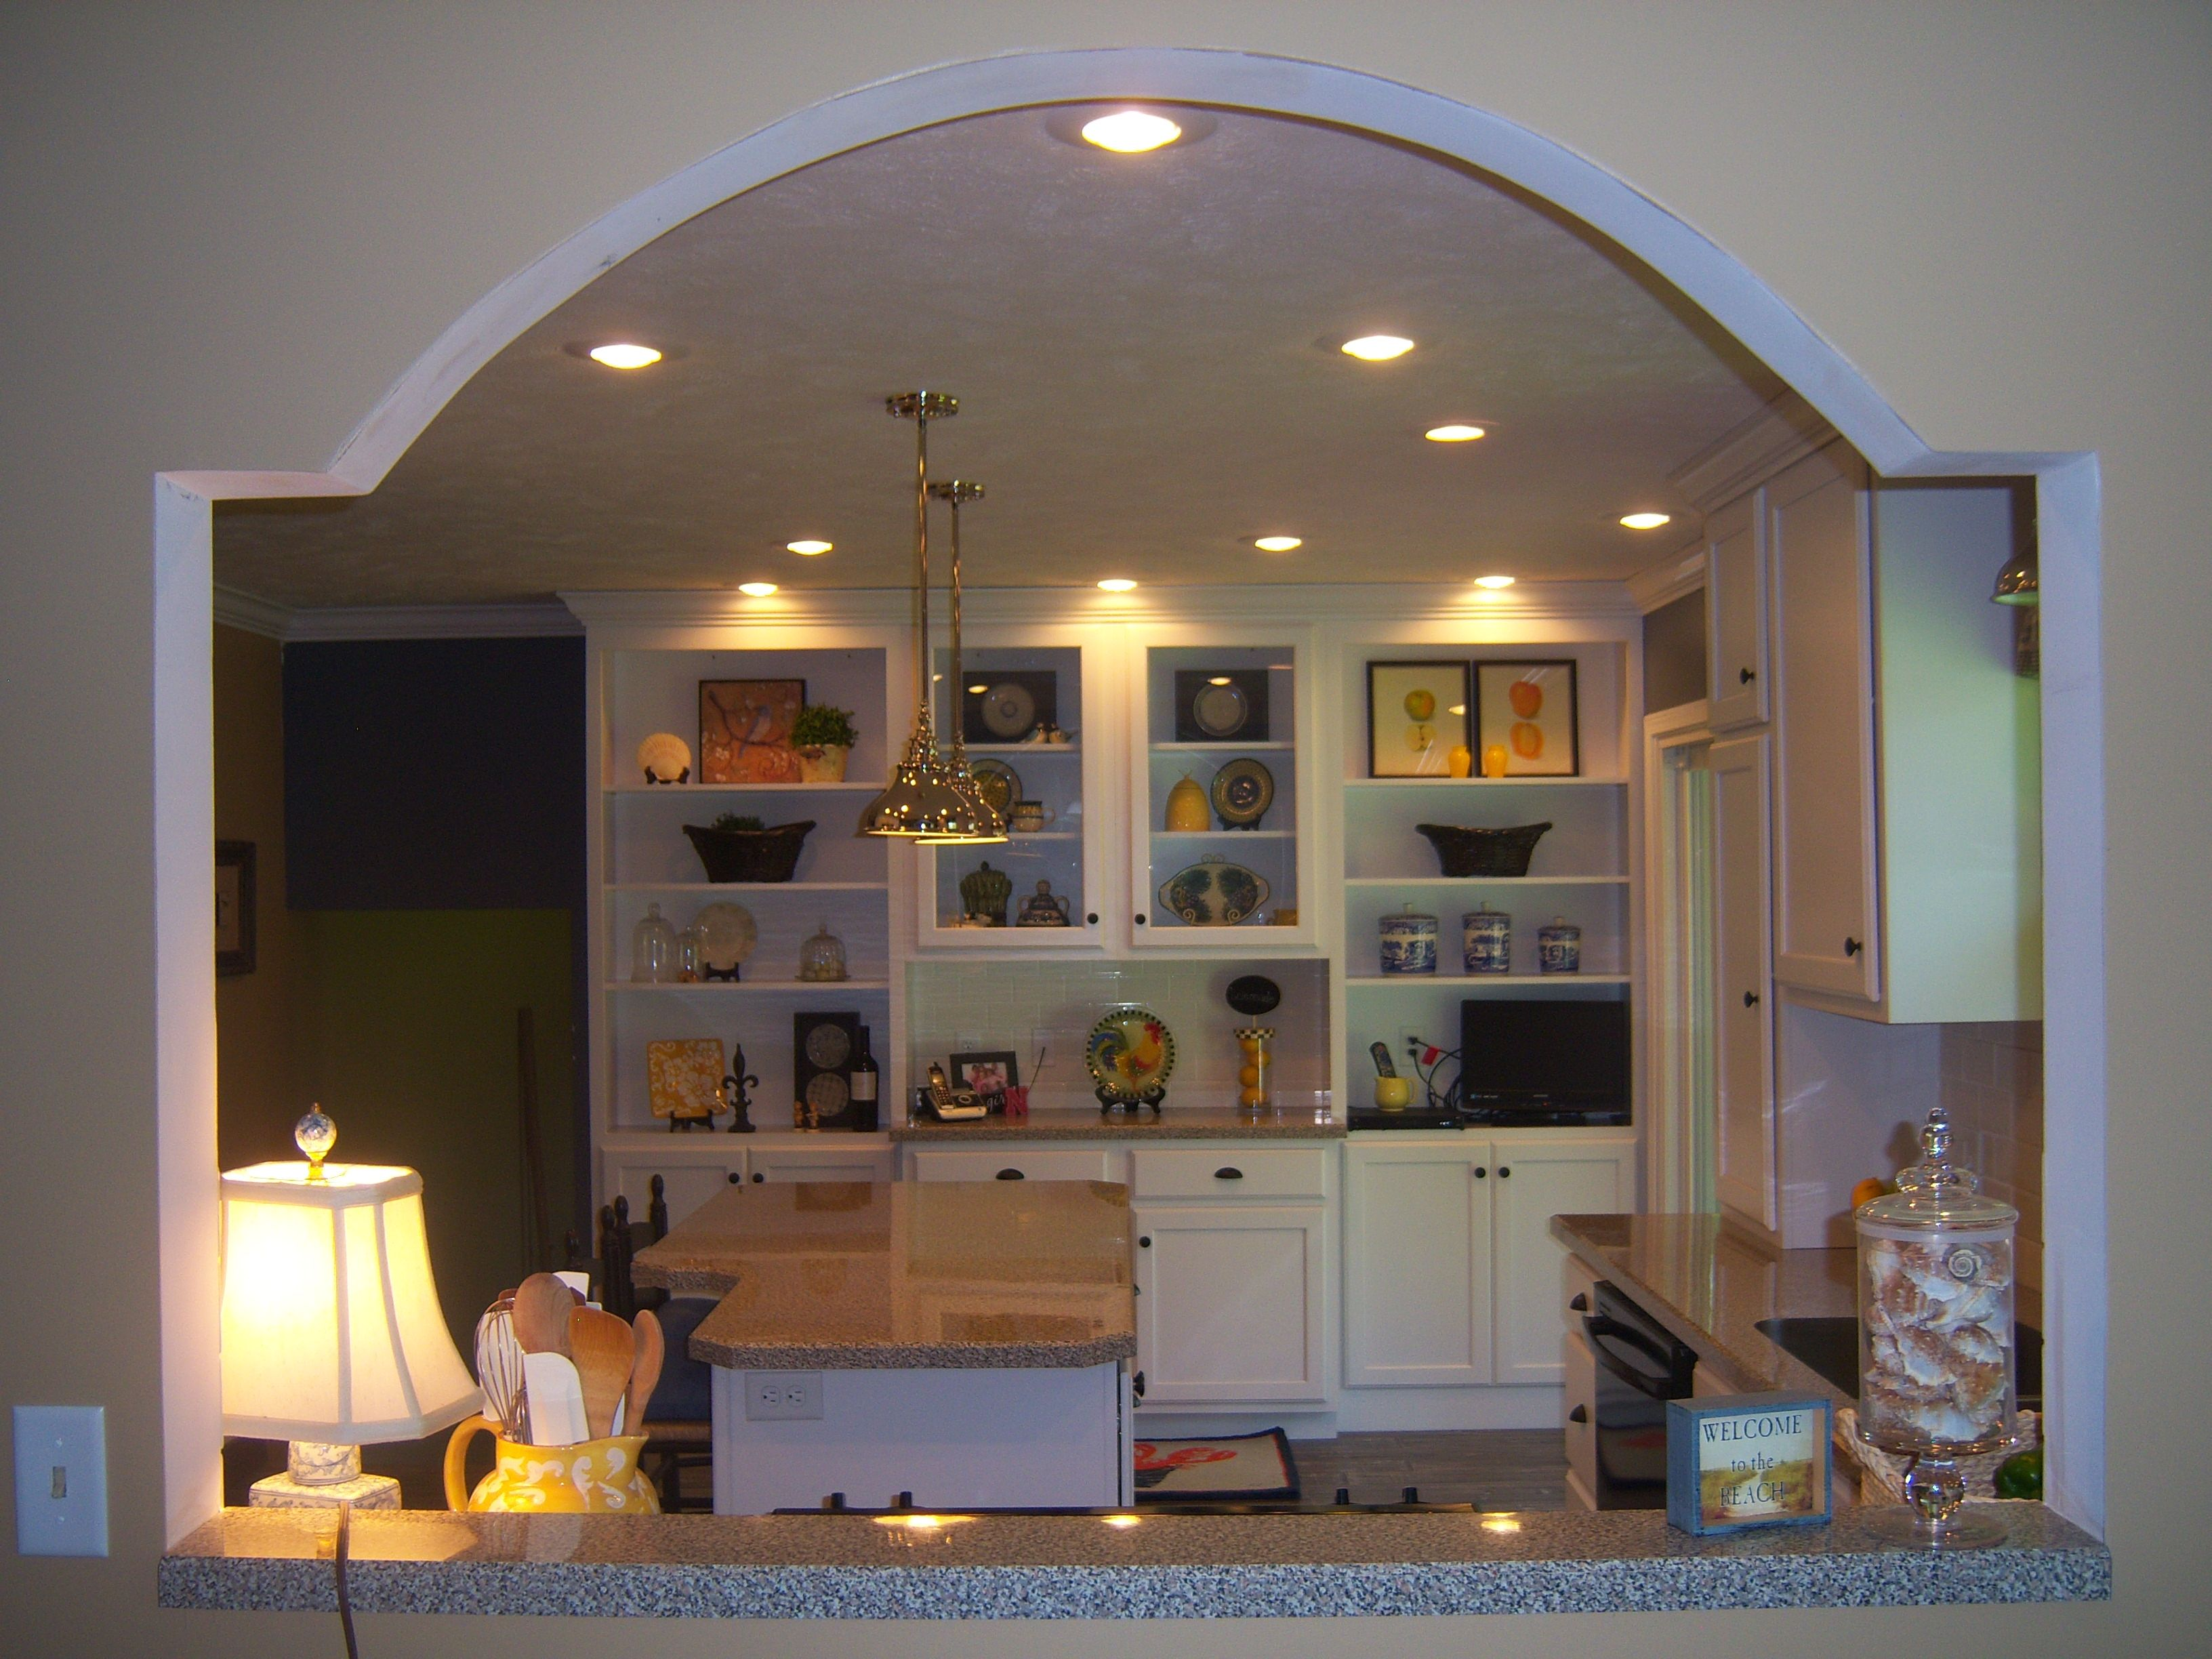 Trim Kitchen And Living Room Opening - Best site wiring ...